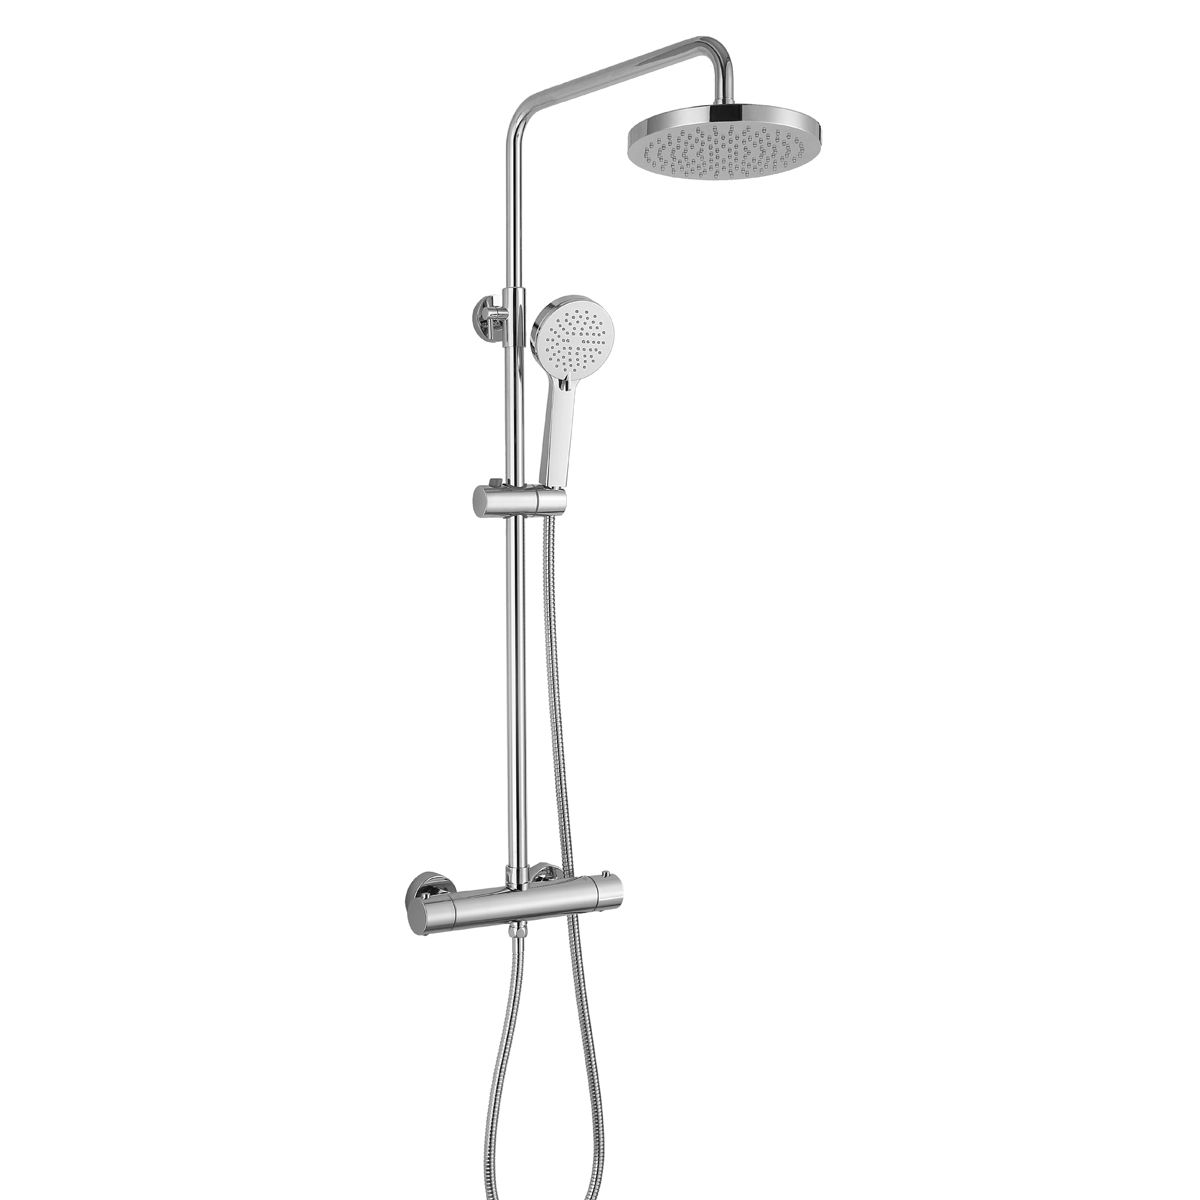 RAK Cool Touch Round Thermostatic Shower Column with Shower Head